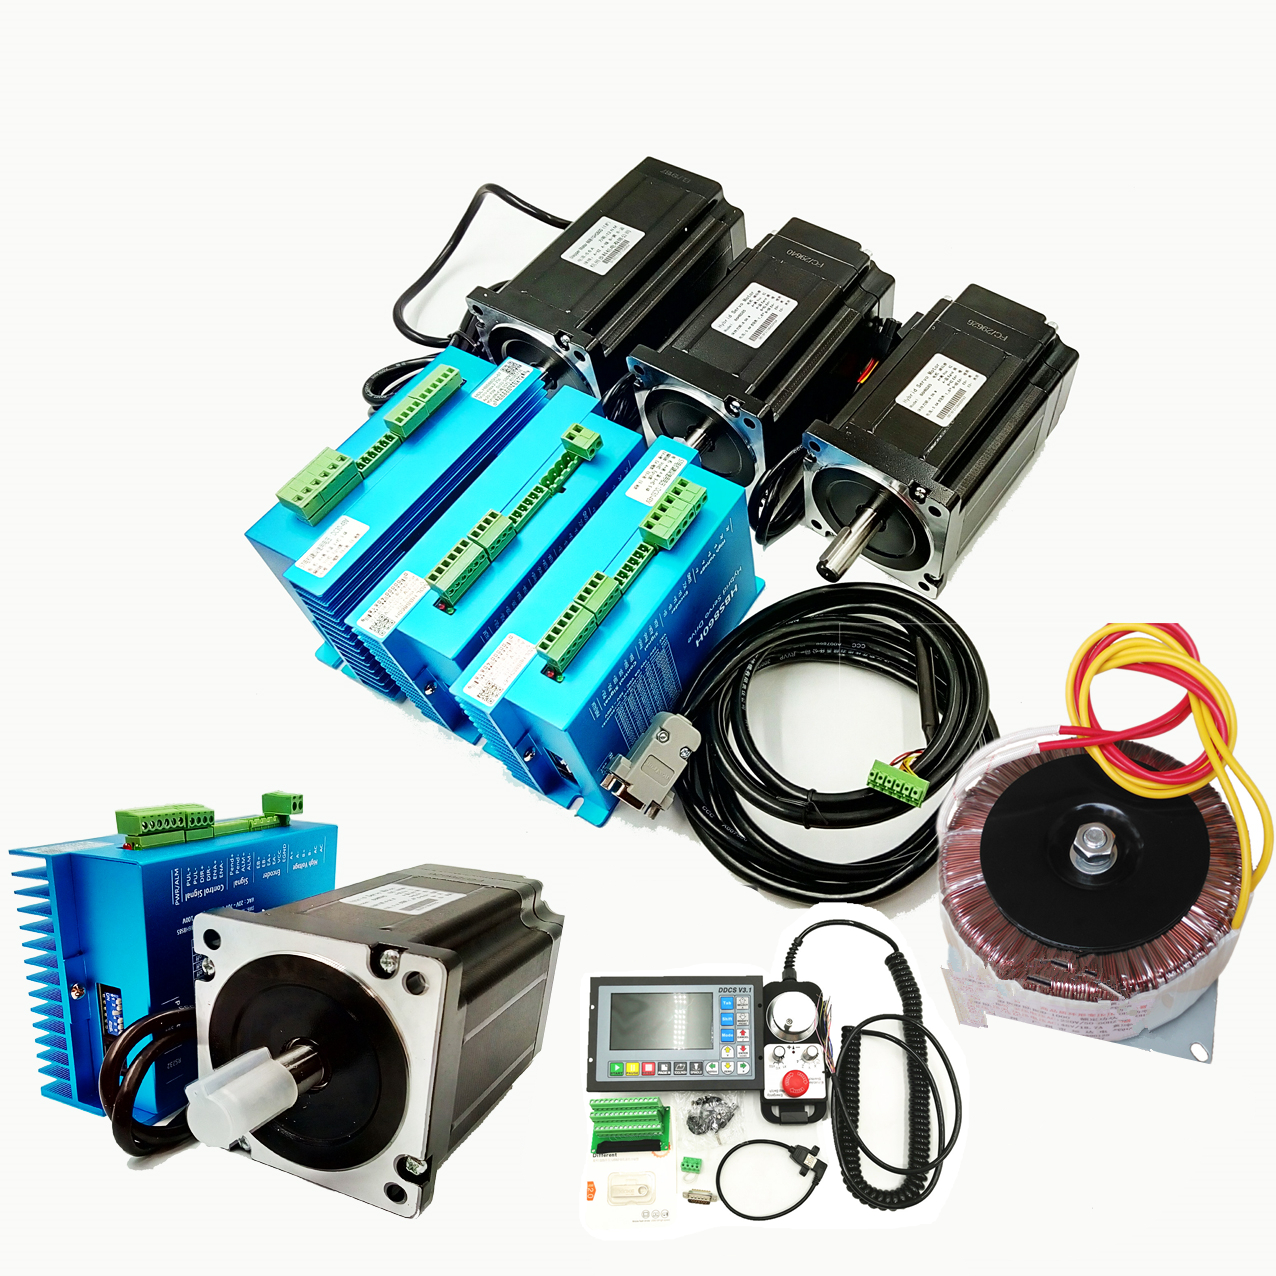 4 Axis NEMA34 1700oz-in 12Nm Closed-Loop Stepper Kit Driver+Motor+Controller3.1+Handwheel+Power Supply for CNC Engraving Machine